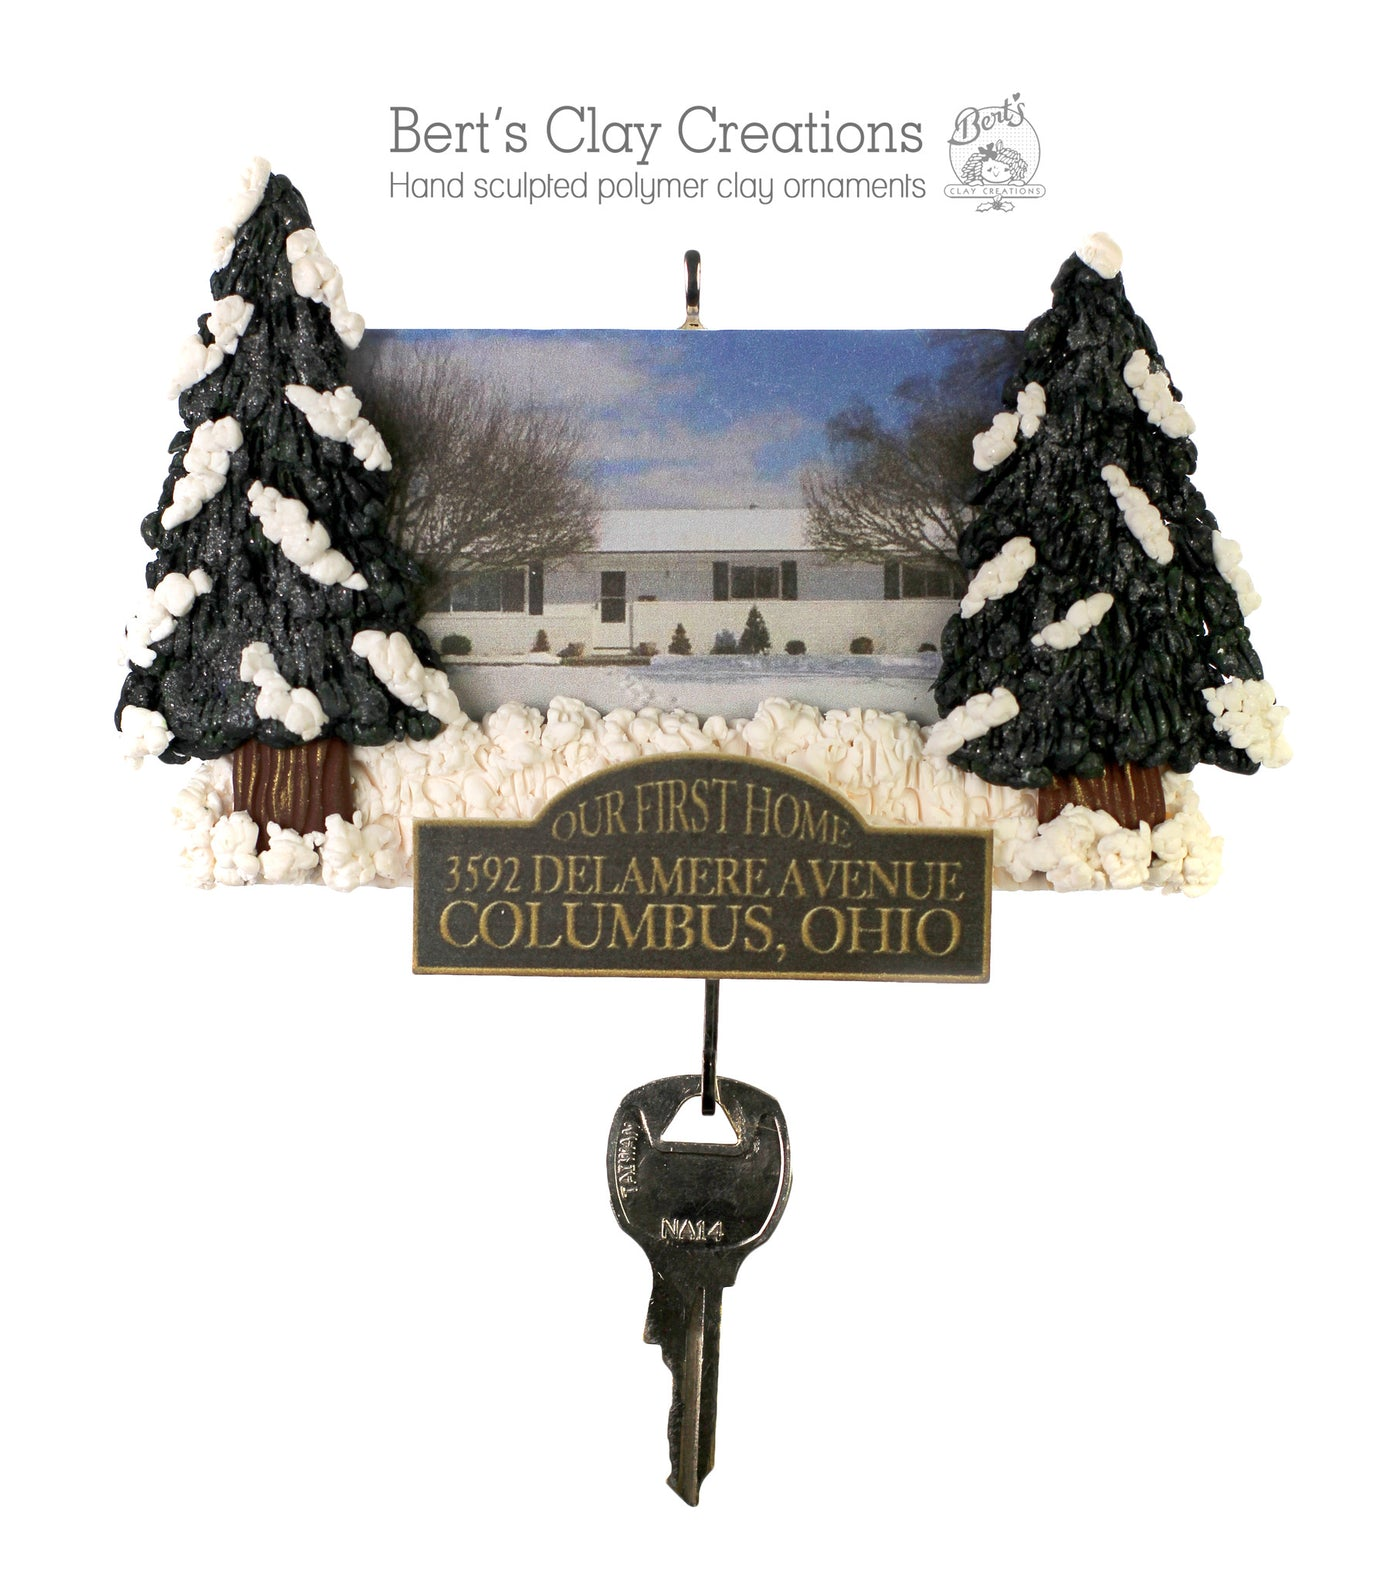 House Ornament by Bert s Clay Creations – Bert s Clay Creations